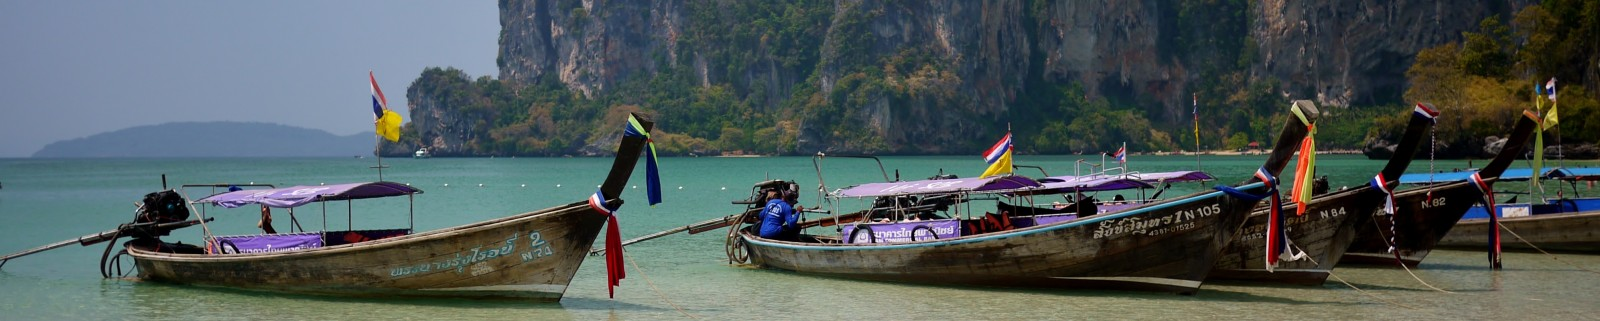 Railay Beach Thailand longboats